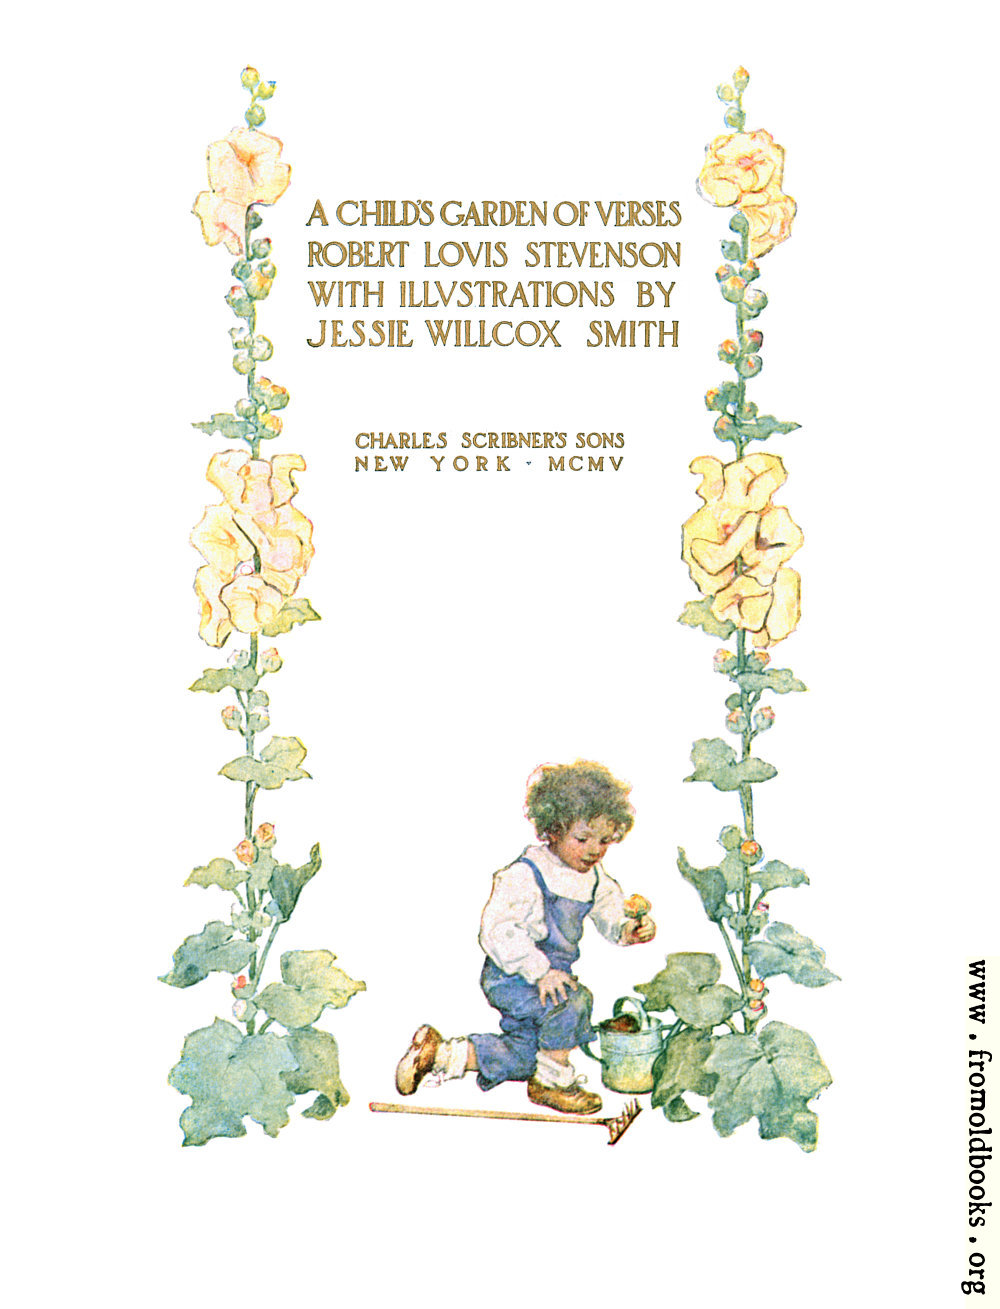 [Picture: Title page from A Child's Garden of Verses]